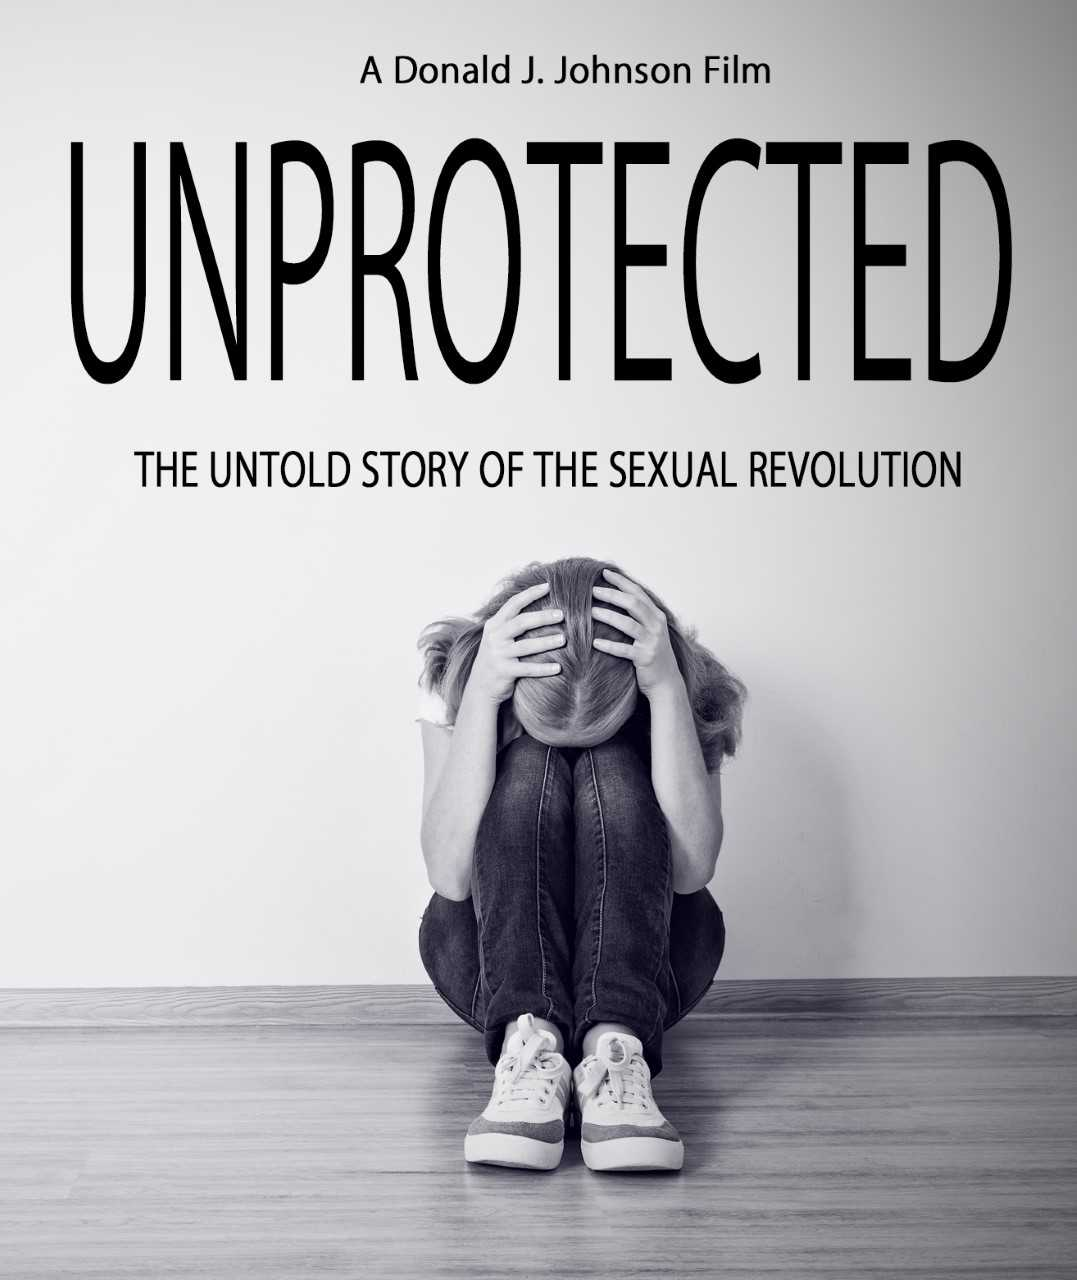 UNPROTECTED The Untold Story of the Sexual Revolution